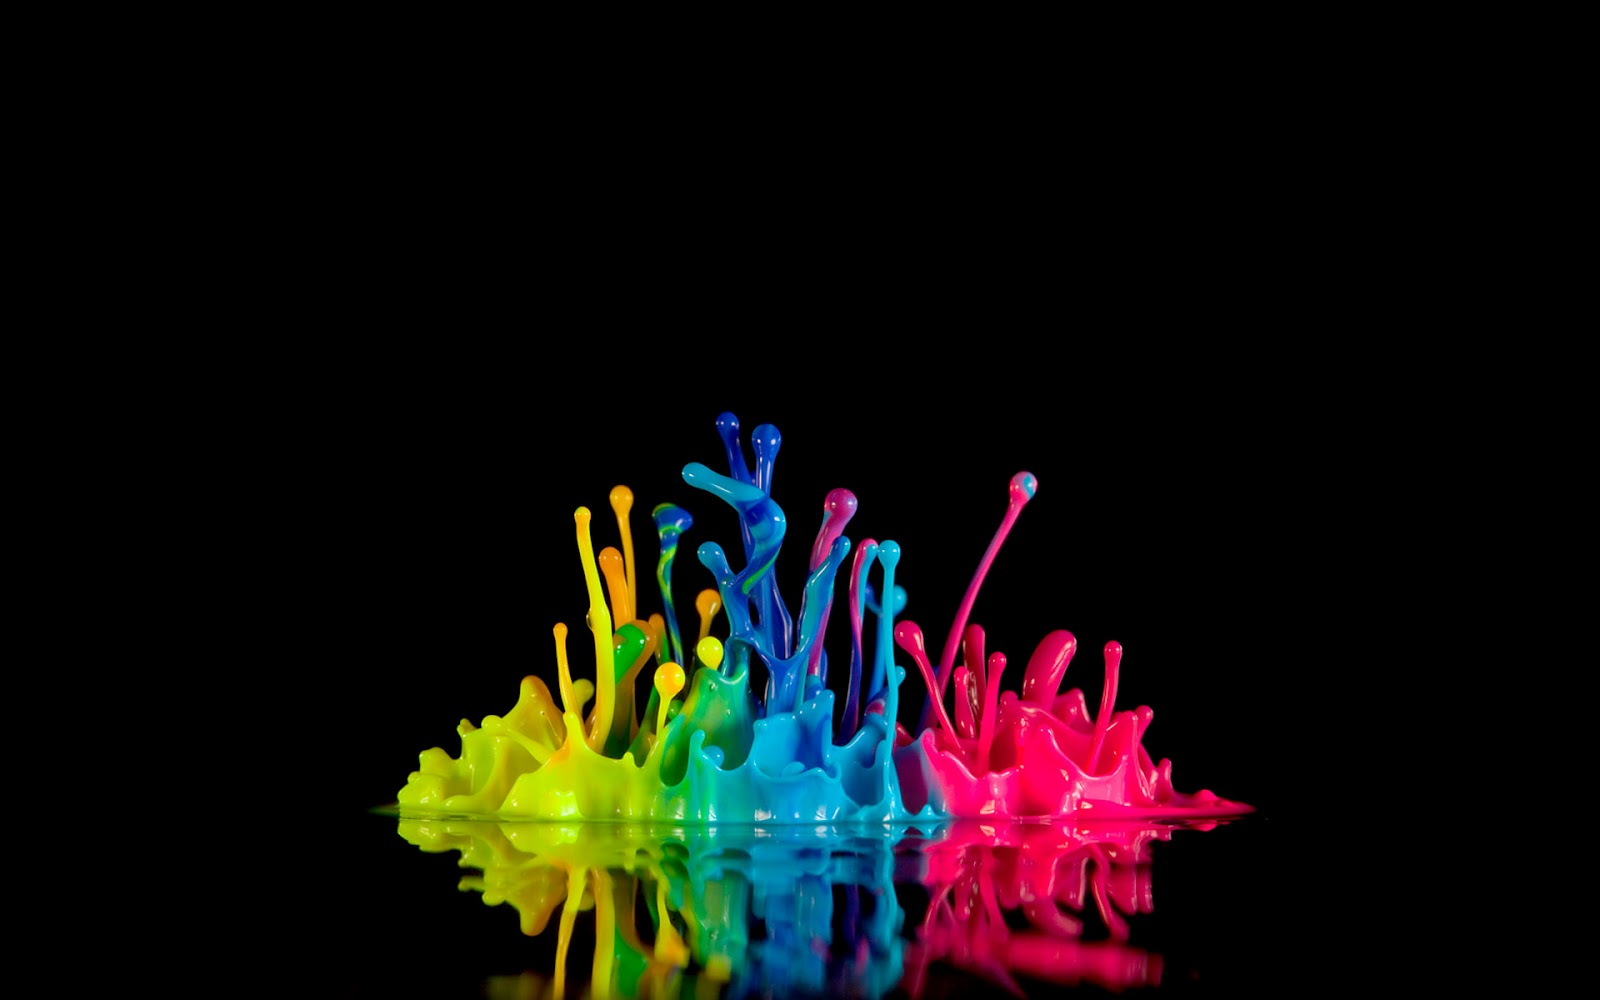 mobile hd colourful wallpapers 1080p